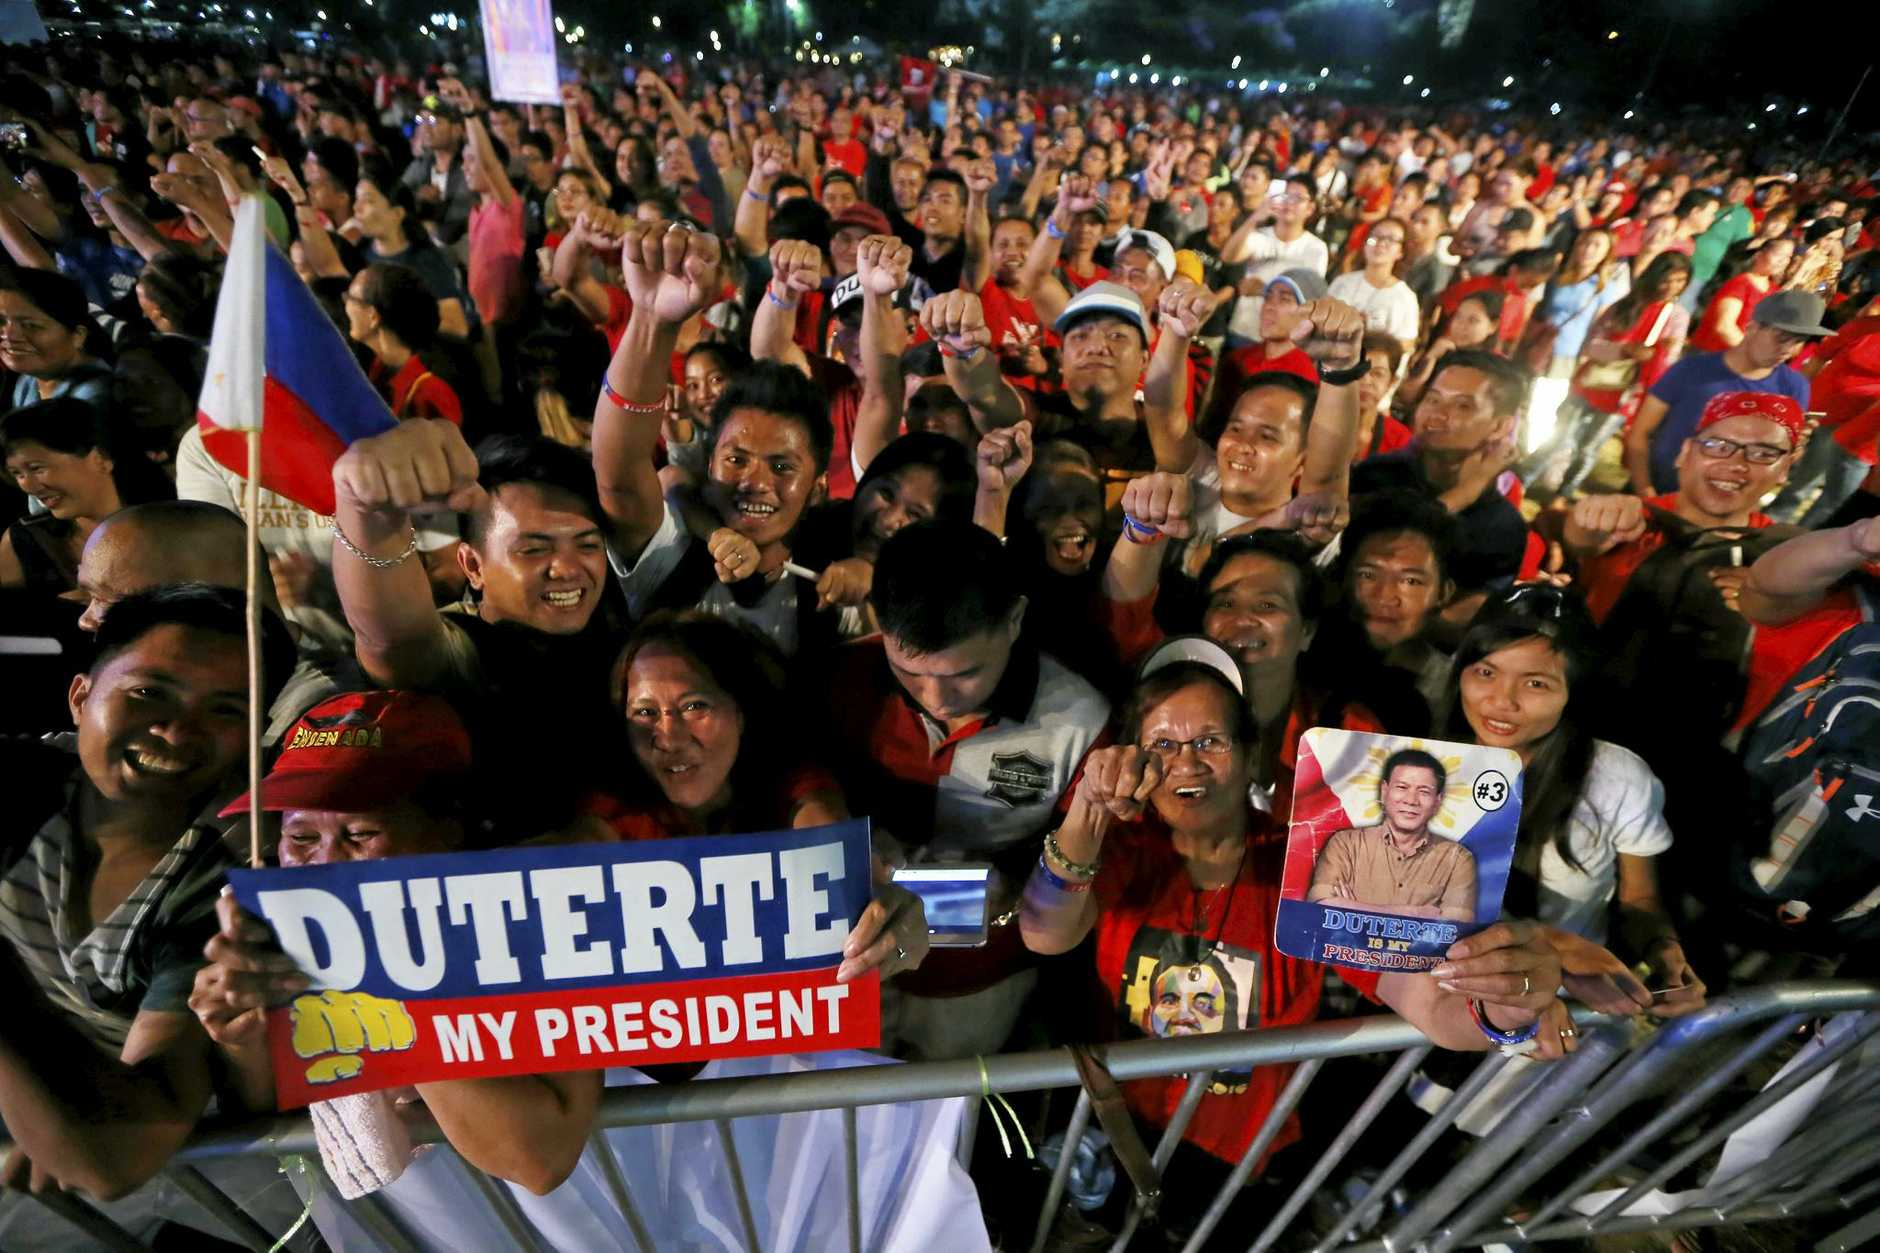 Supporters of President Rodrigo Duterte gather at Manila's Rizal Park for an overnight vigil to show their support for the President's so-called war on drugs.